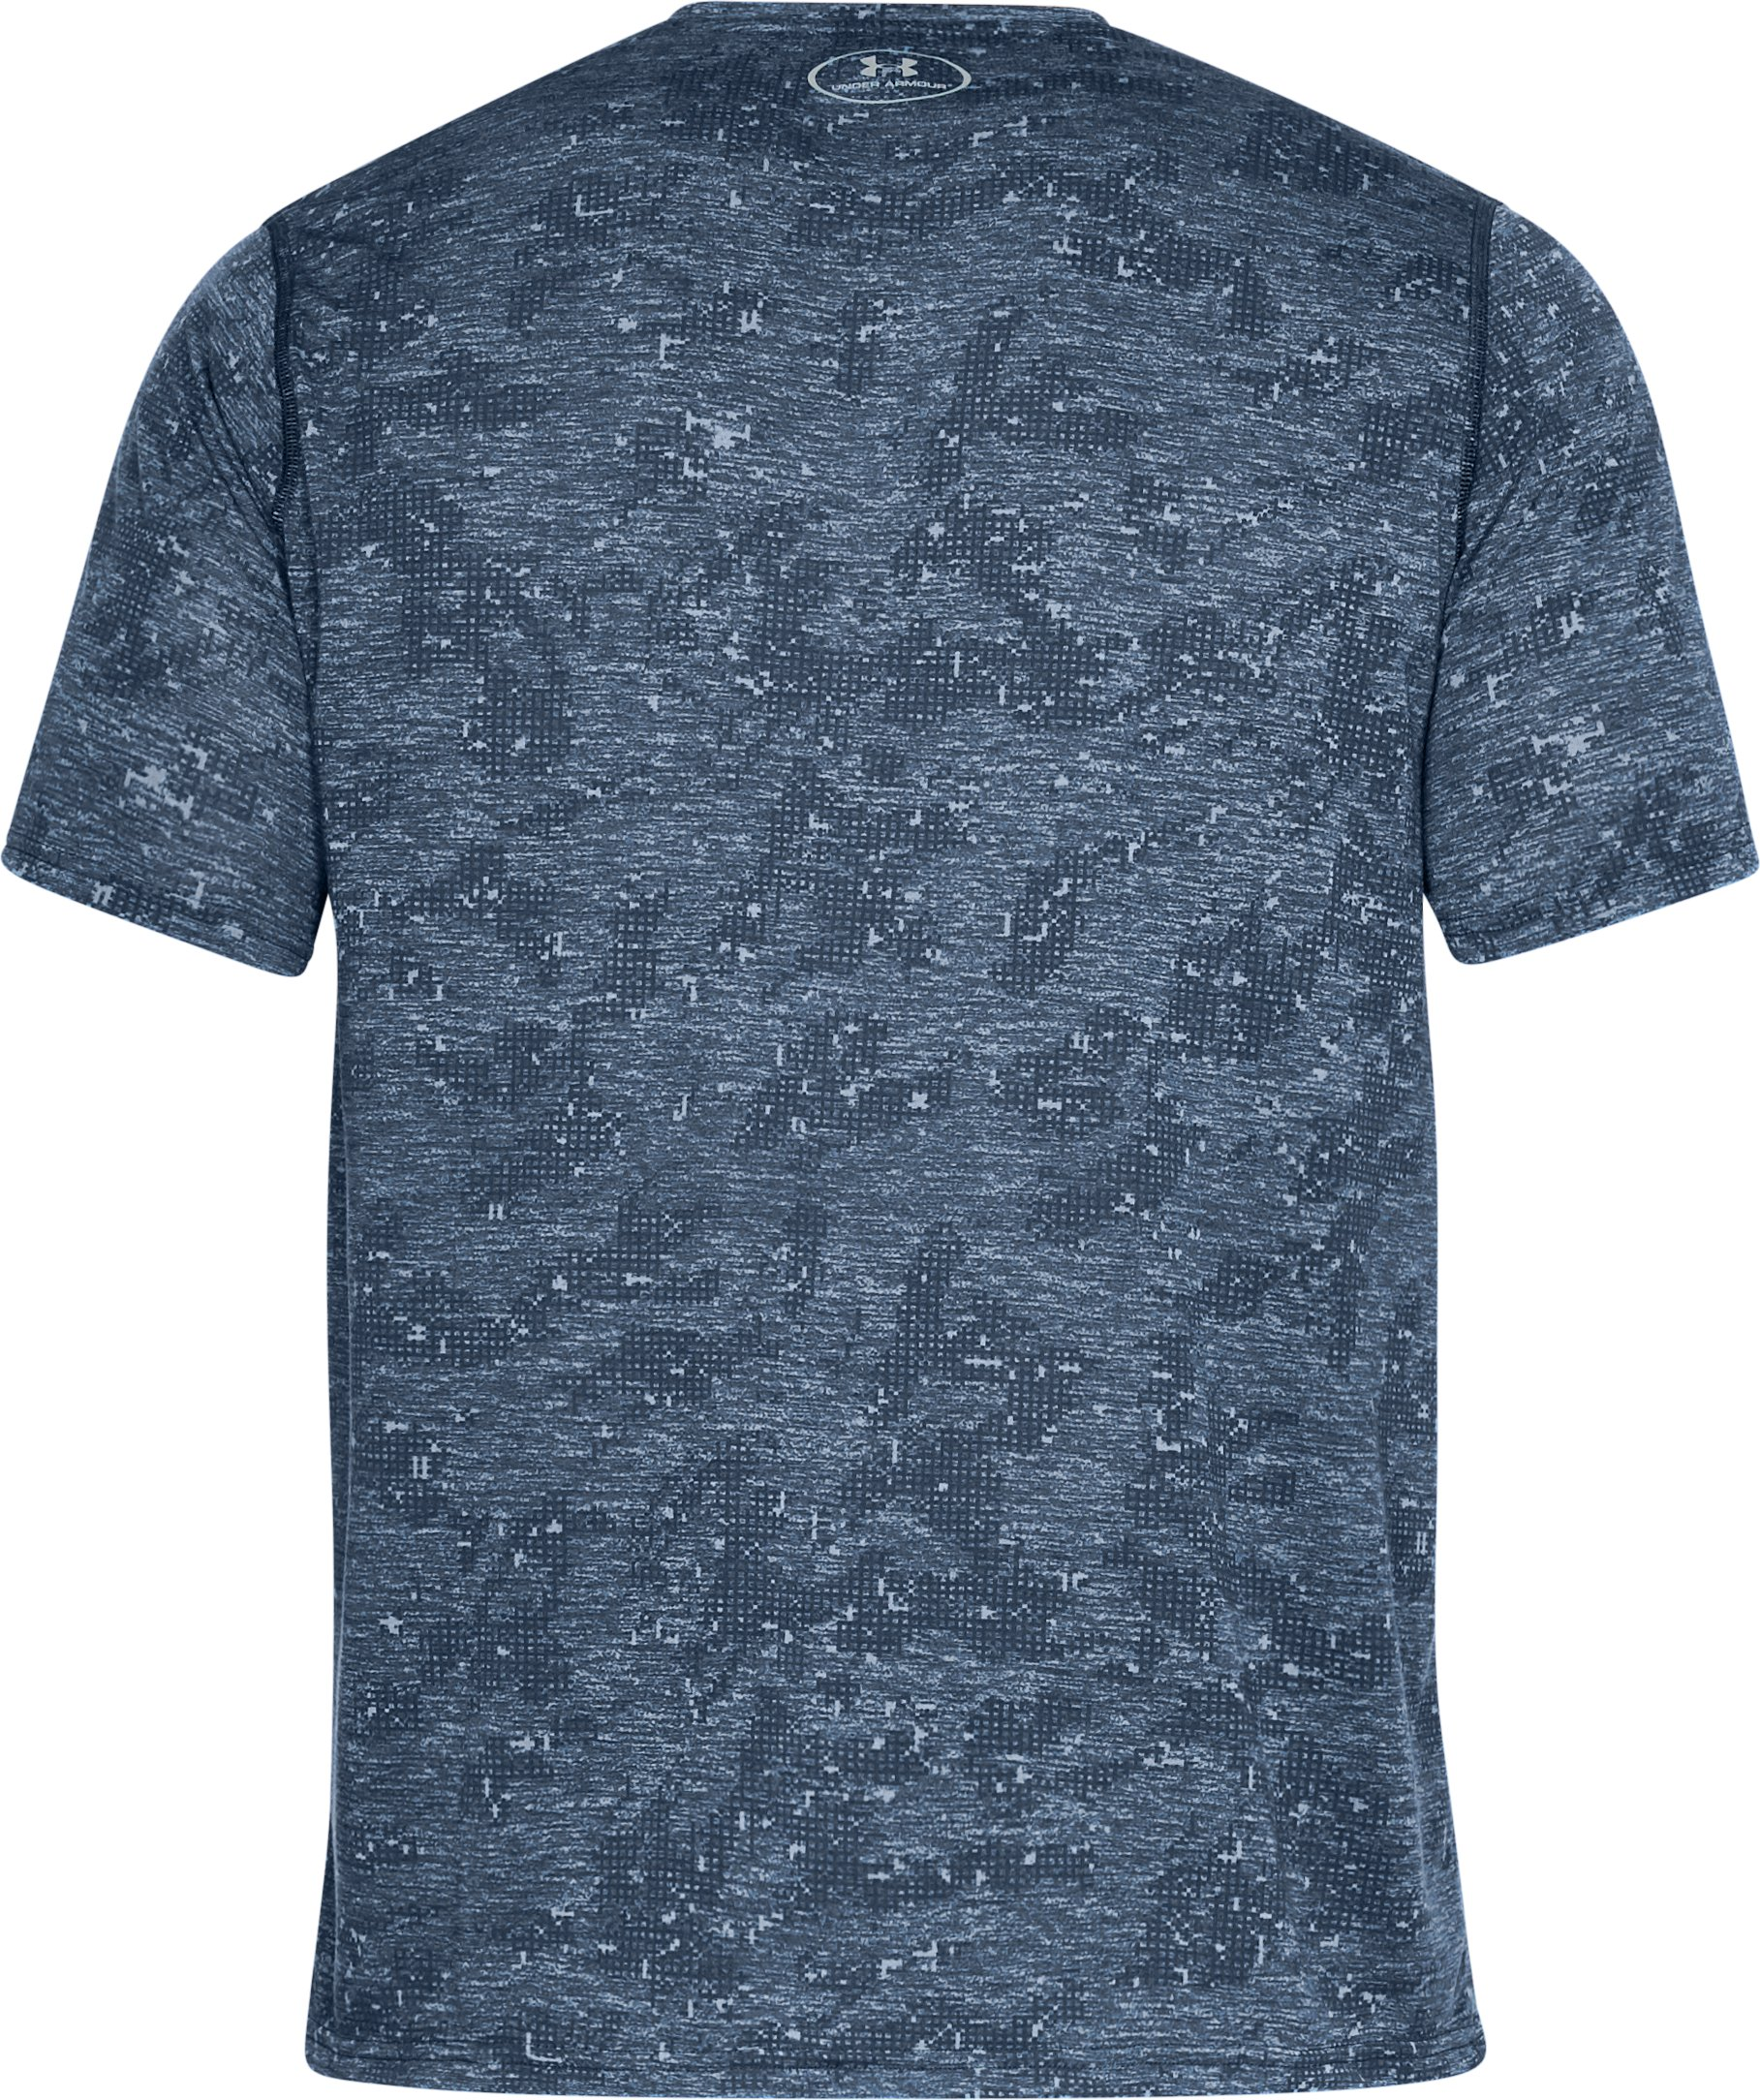 Men's UA Siro Printed V-Neck T-Shirt, Academy, undefined